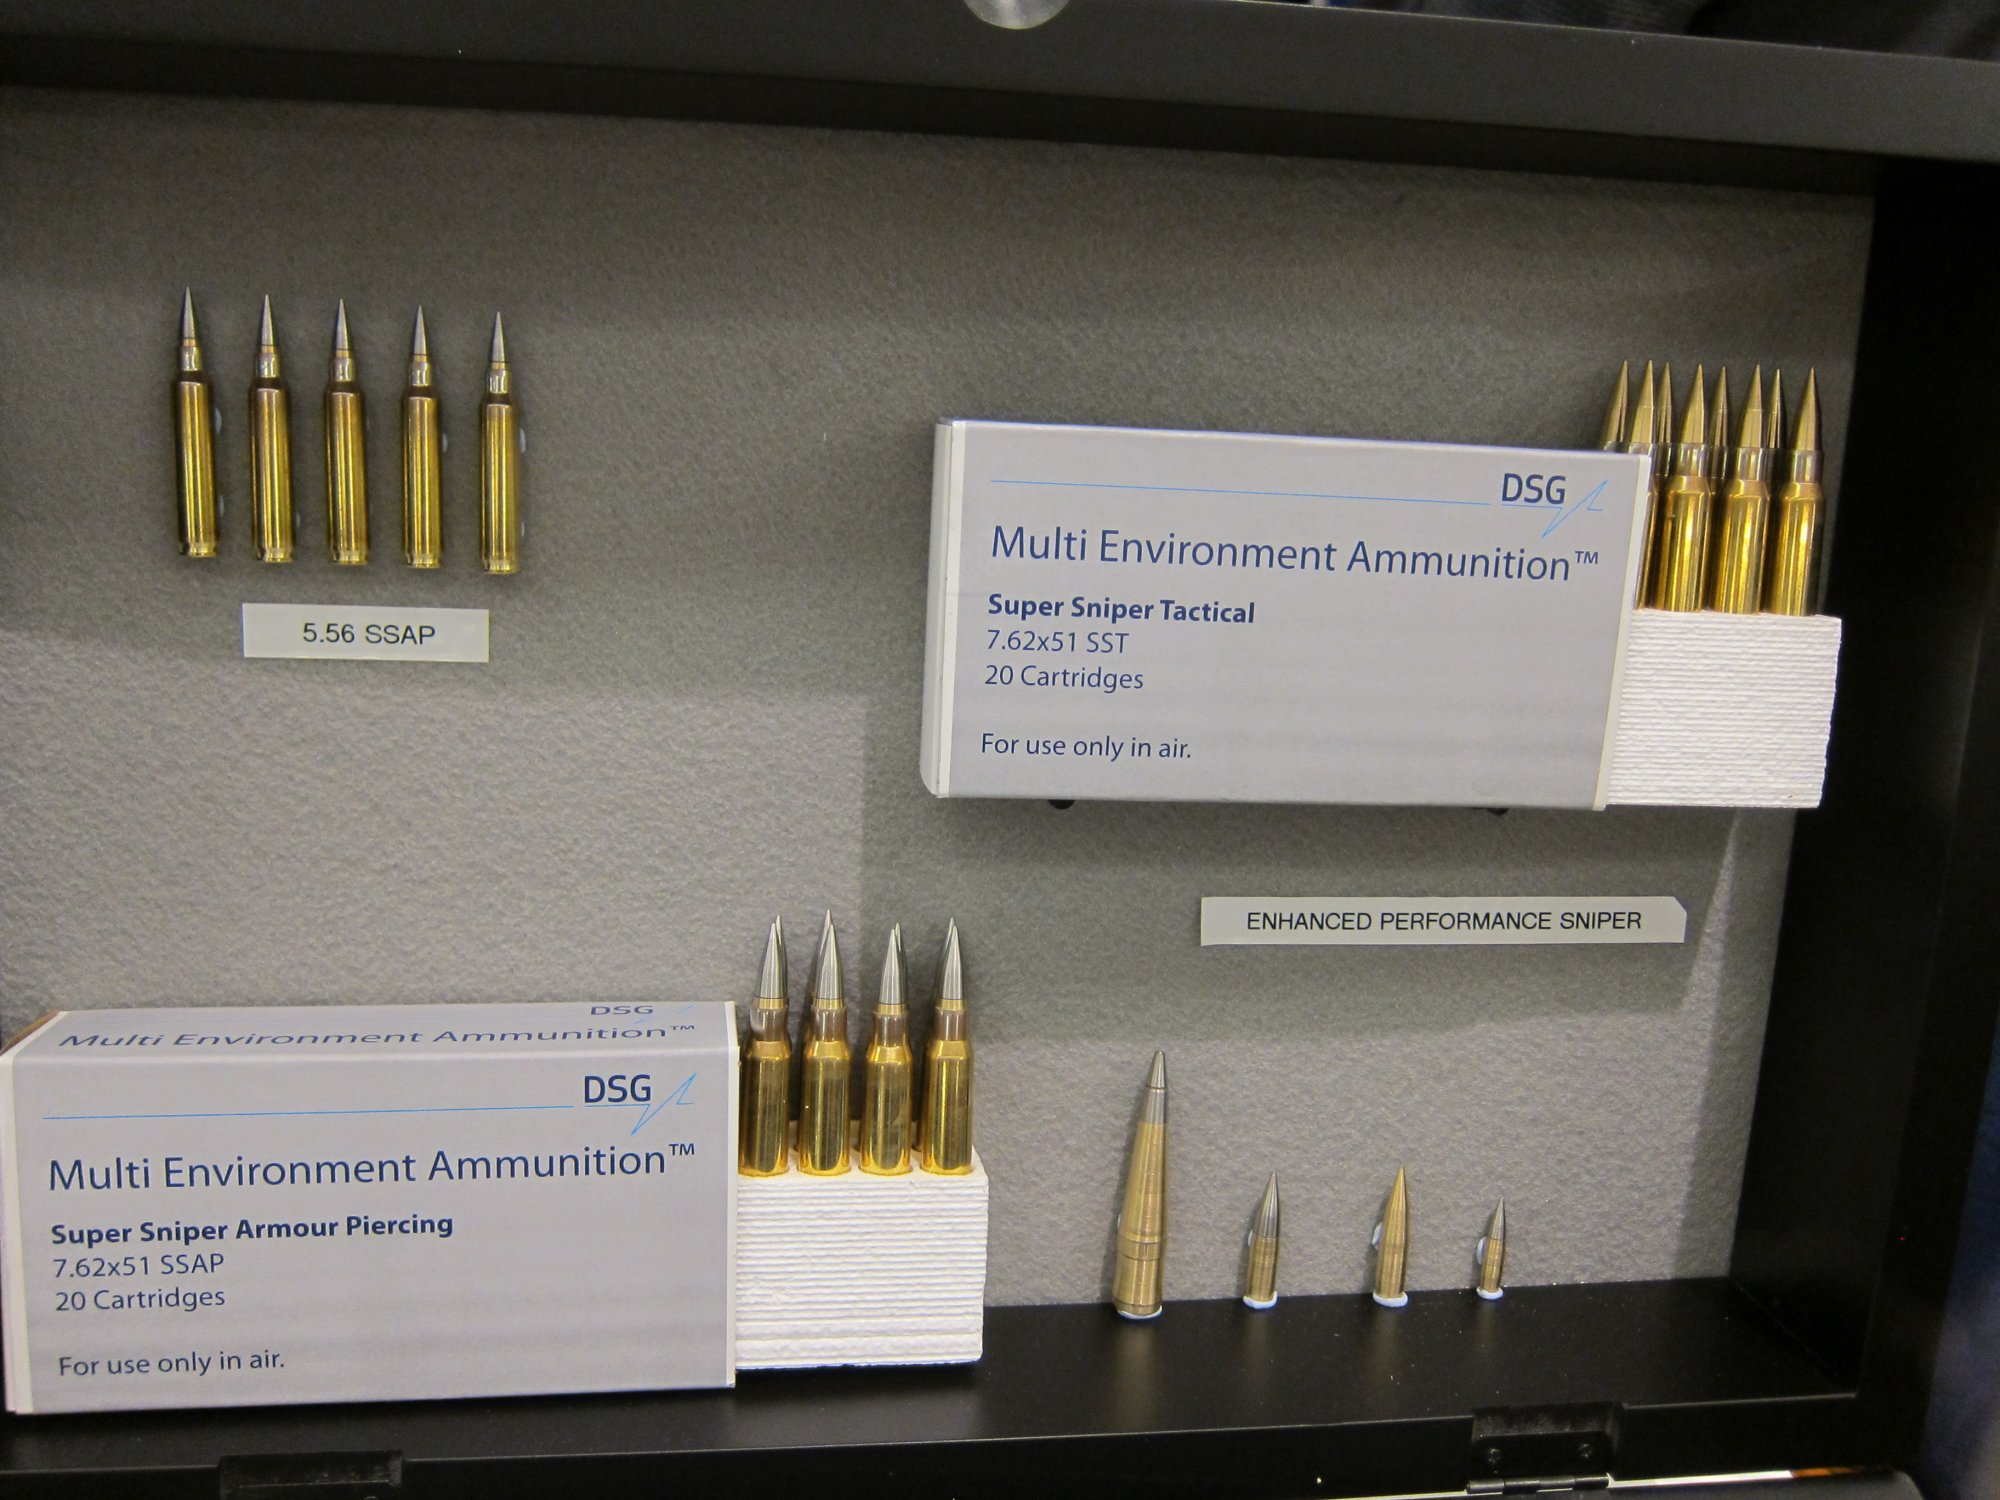 DSG Technology PNW Arms Super Sniper Ammunition SSA formerly Enhanced Performance Sniper EPR Super Sniper Tactical SST and Super Sniper Armor Piercing SSAP Rounds NDIA Joint Armaments 2012 DefenseReview.com DR 3 DSG Technology/PNW Arms Super Sniper Ammunition (SSA) Enhanced Range Rifle Ammo Being Made in the USA for Military Special Operations Forces (SOF) Long Range Interdiction/Sniping and Close Quarters Battle/Close Quarters Combat (CQB/CQC) Applications: Solid Copper Super Sniper Tactical (SST) Rounds/Bullets and Tungsten Tipped Super Sniper Armor Piercing/Armor Penatrating (SSAP) AP Rounds/Bullets in All Military NATO Calibers! (Video!)